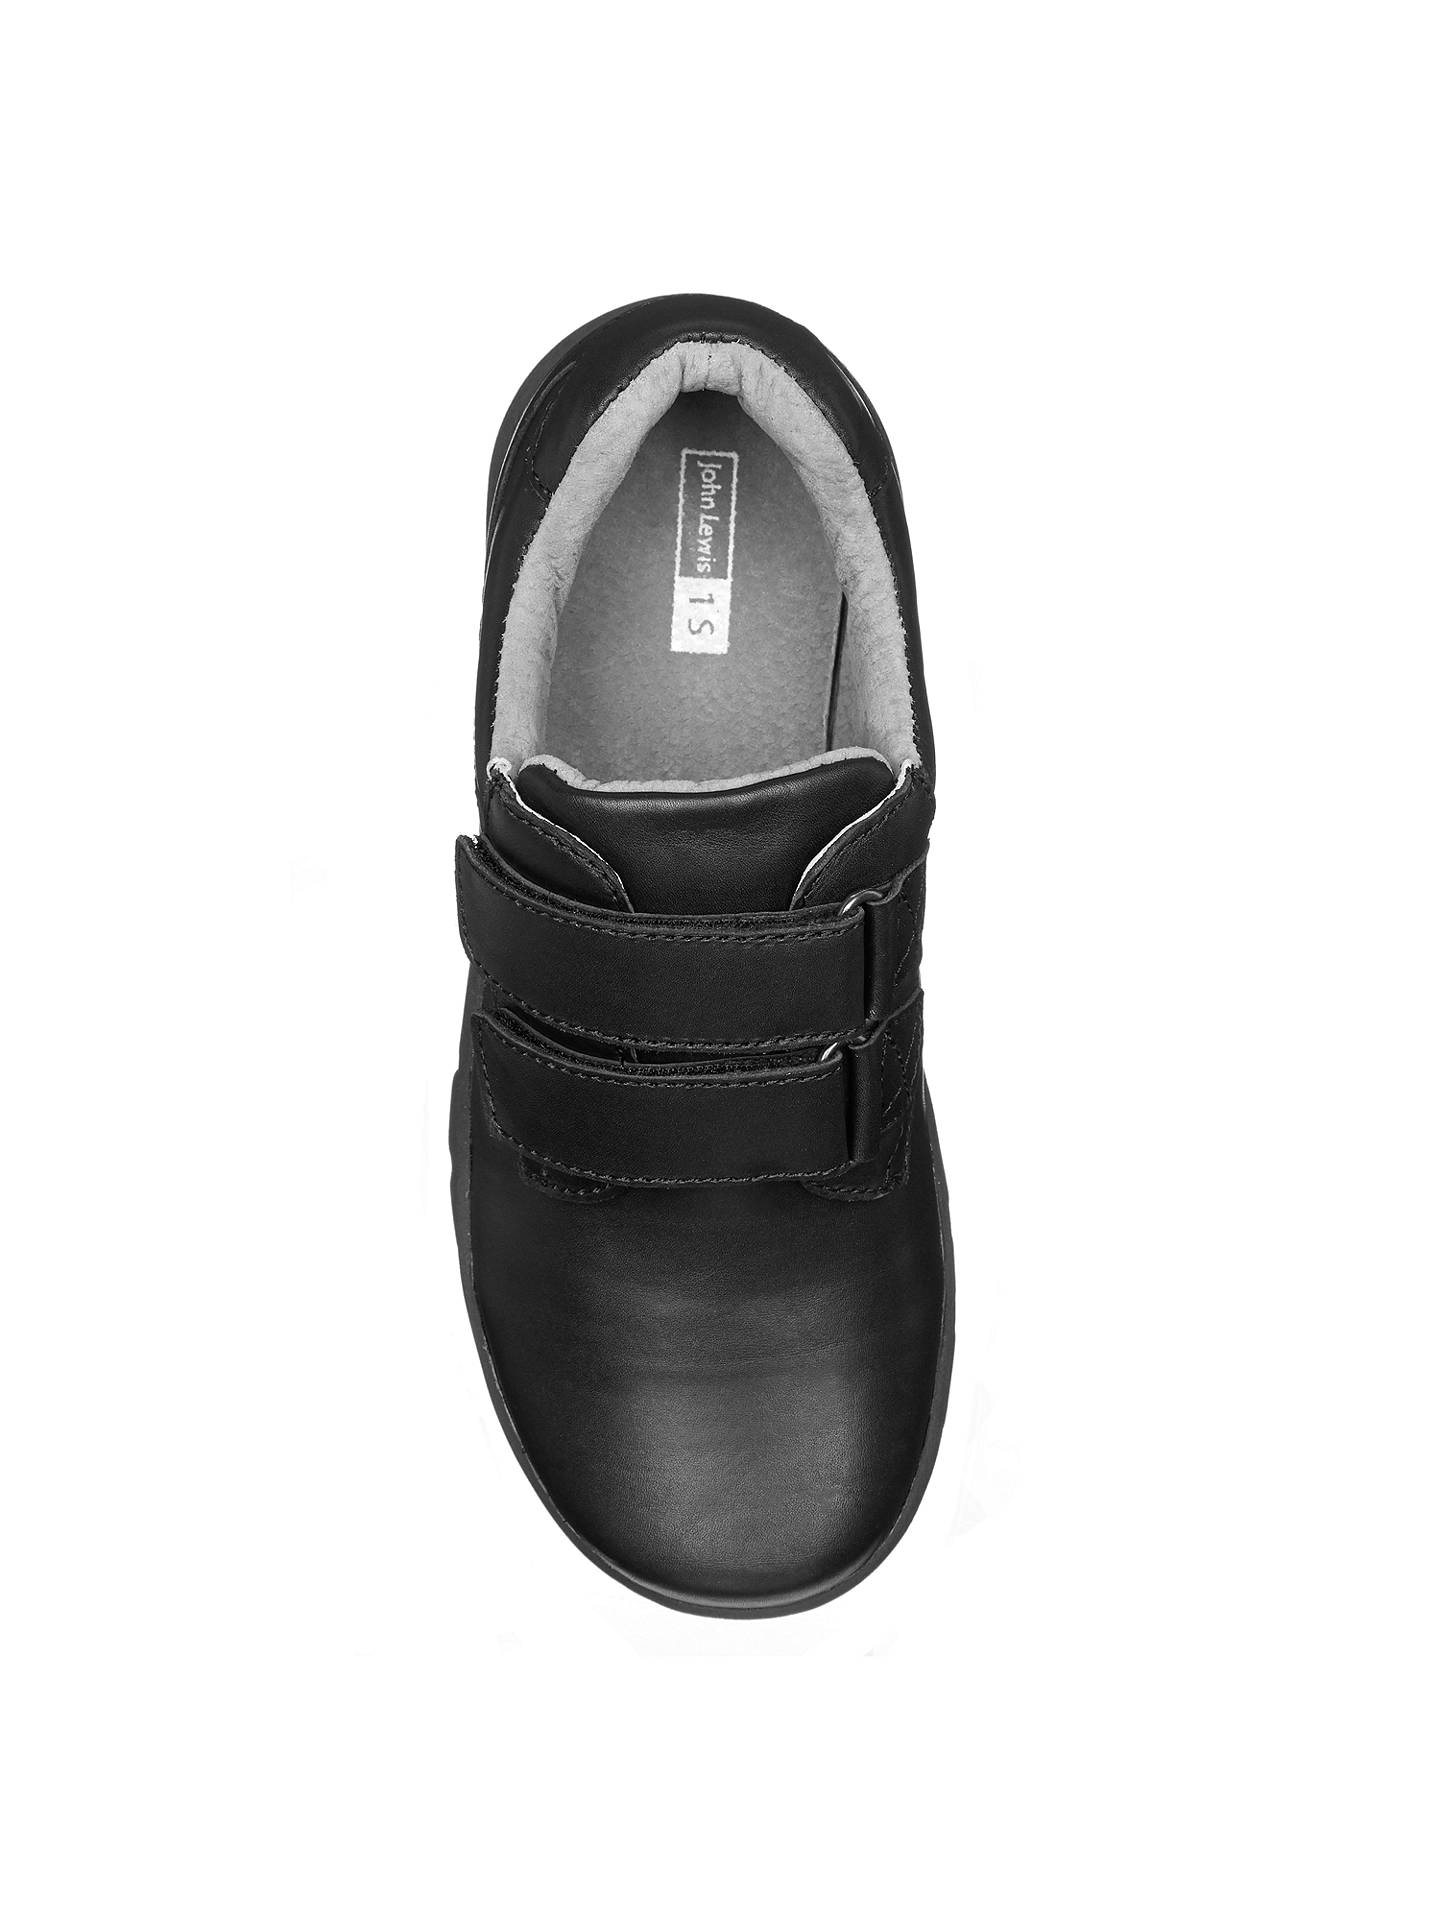 BuyJohn Lewis & Partners Children's Surrey Double Rip-Tape Shoes, Black, 10W Jnr Online at johnlewis.com